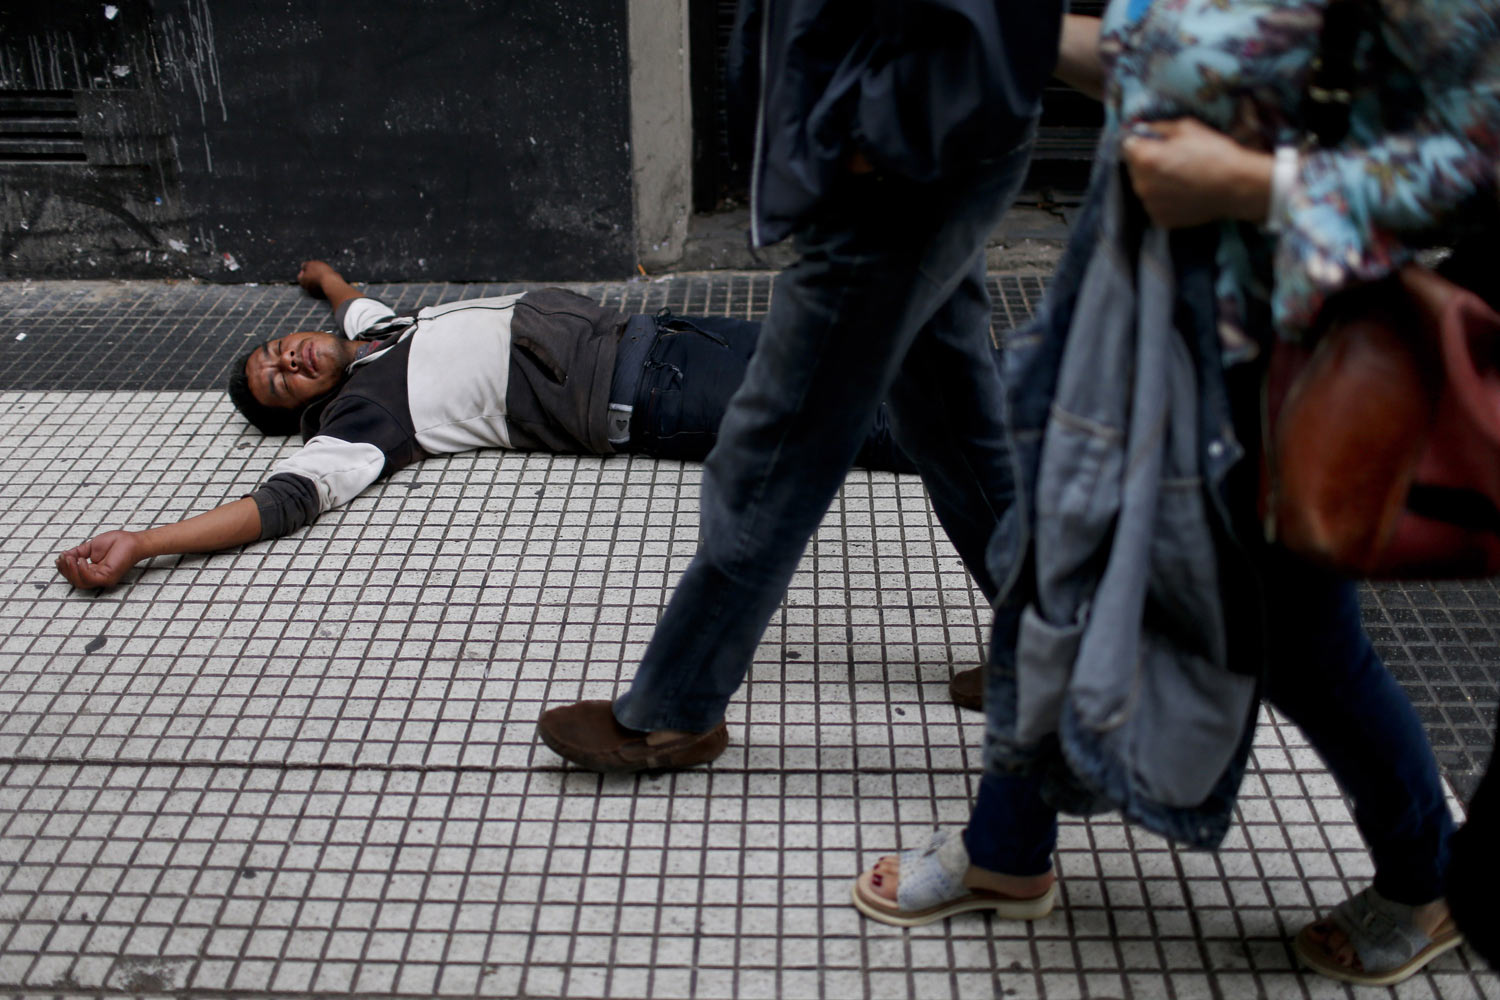 A man sleeps on a street in Buenos Aires, Argentina, Thursday, Jan. 10, 2019. The World Bank has slashed its forecast for 2019 growth for Turkey, Argentina, Iran and Pakistan, among others. (AP Photo/Natacha Pisarenko)